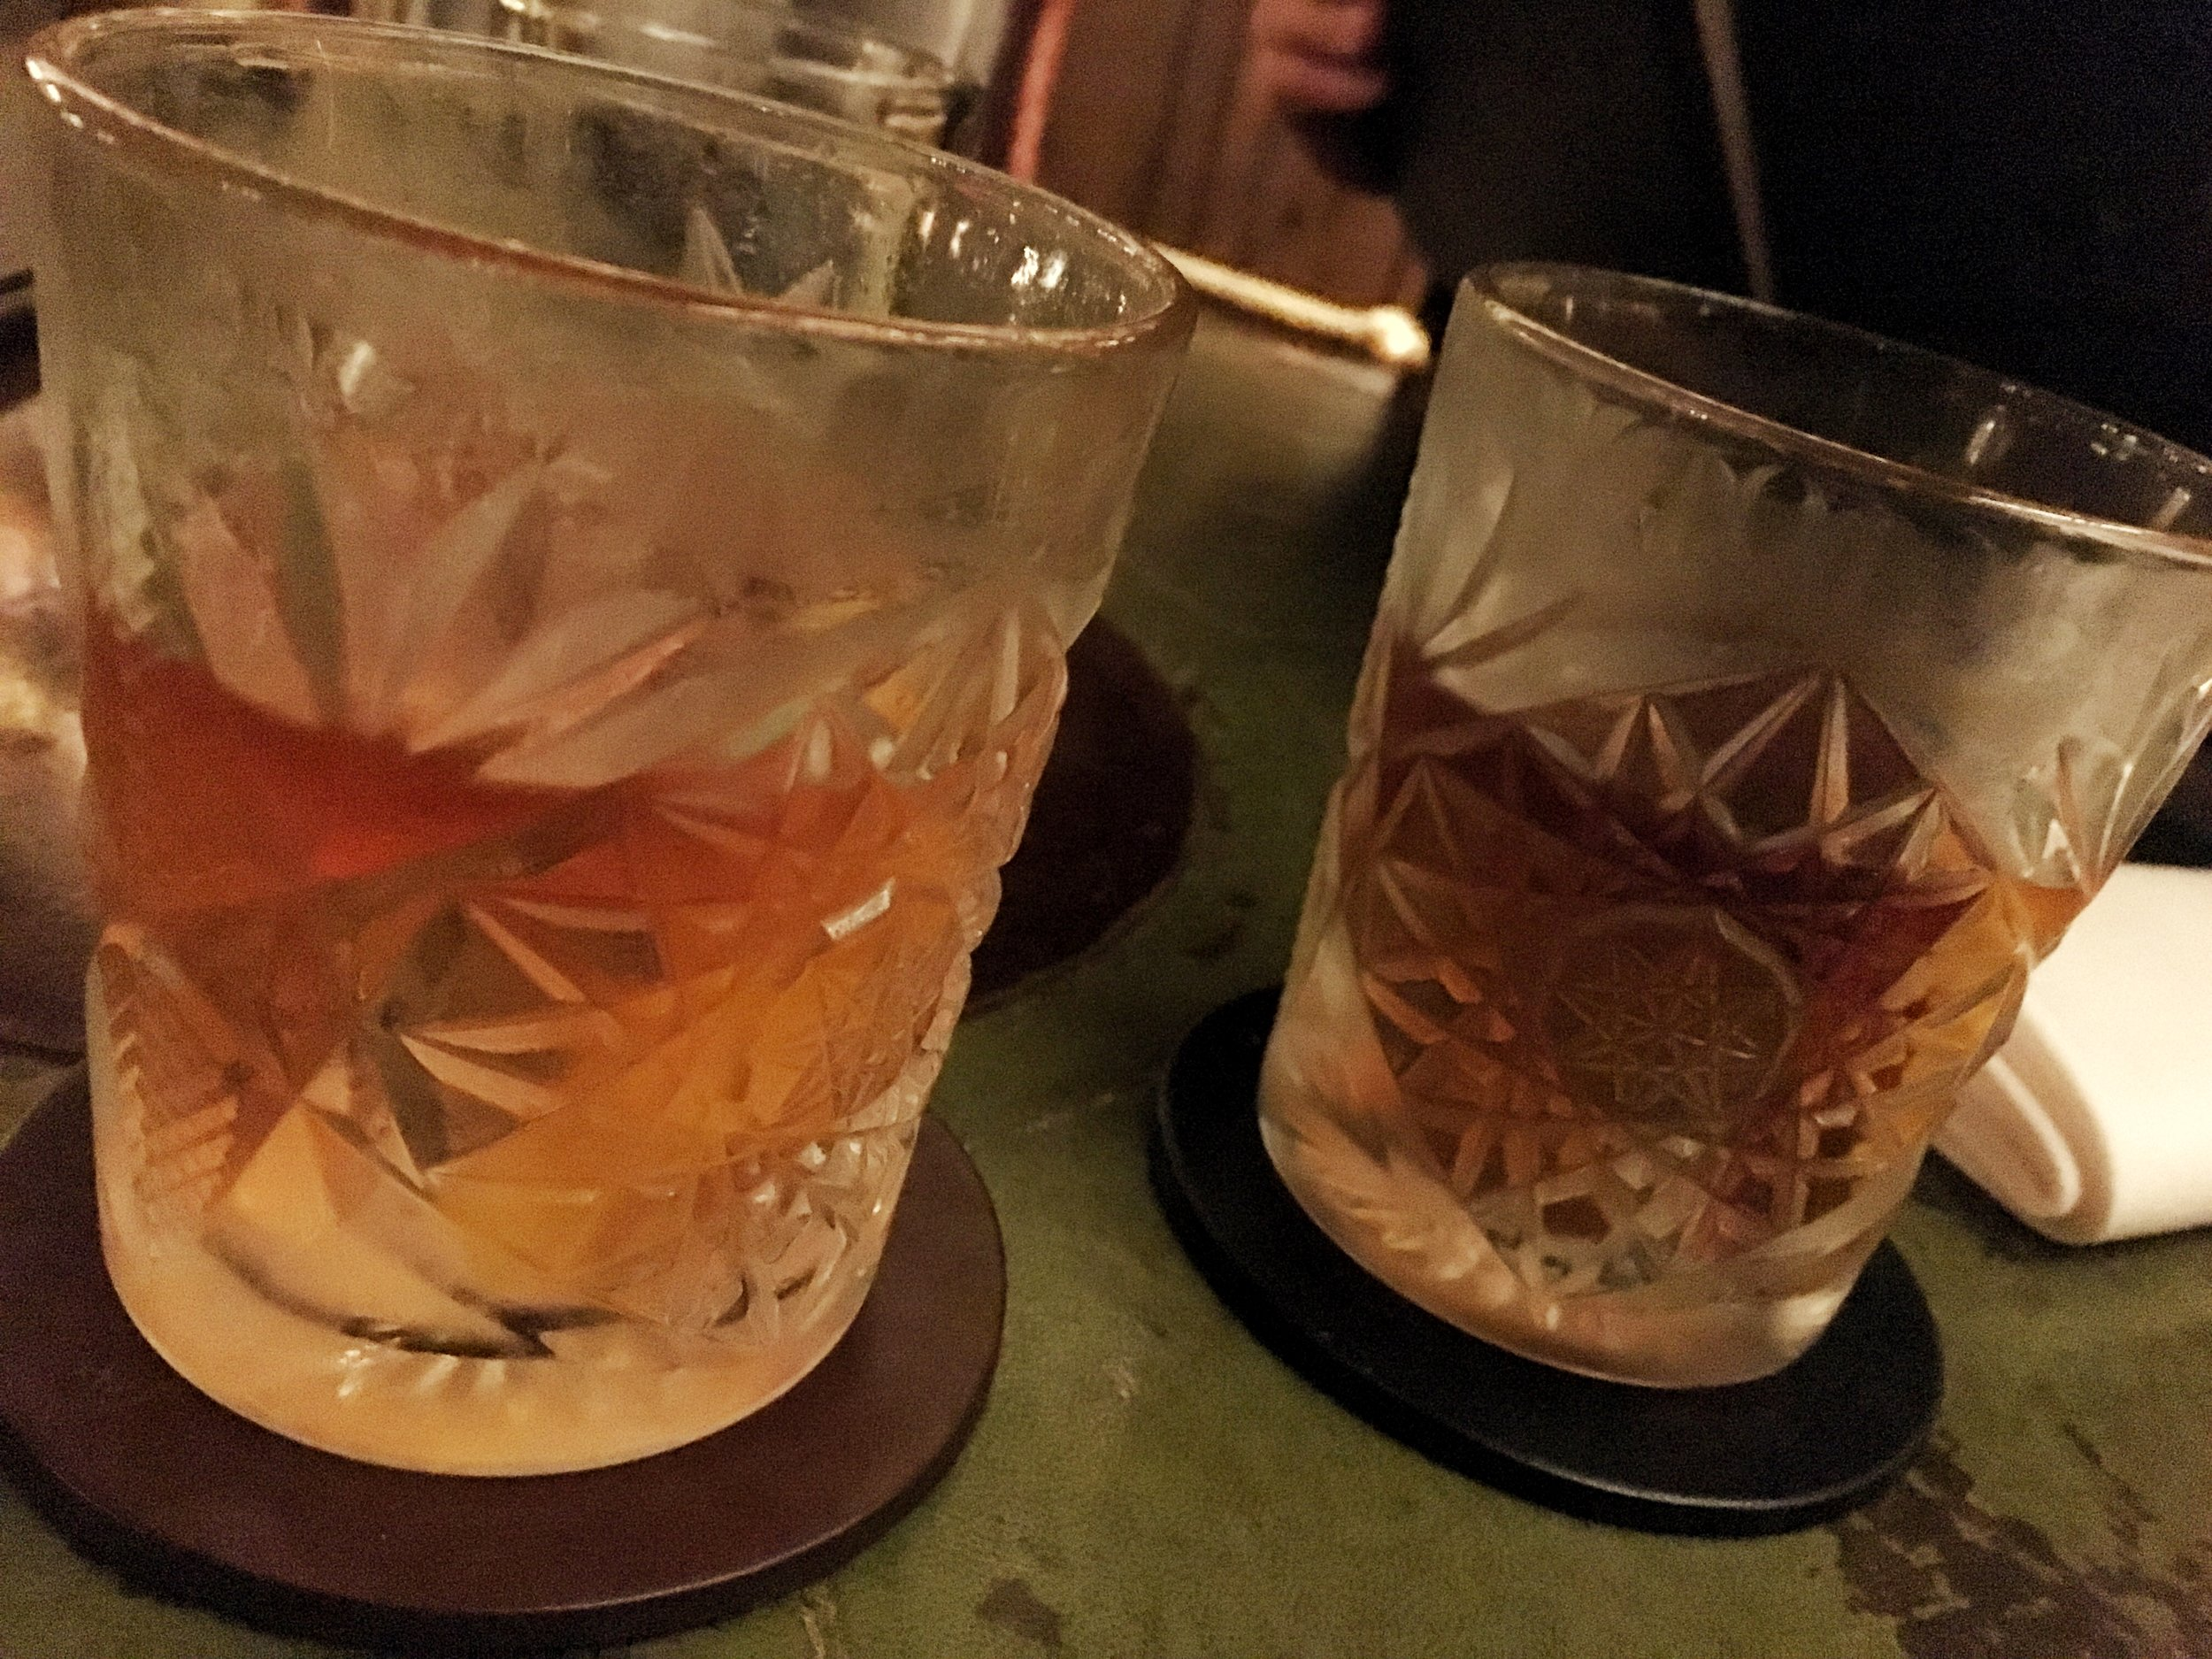 Left to Right: Improved Whiskey Cocktail, Old Fashioned